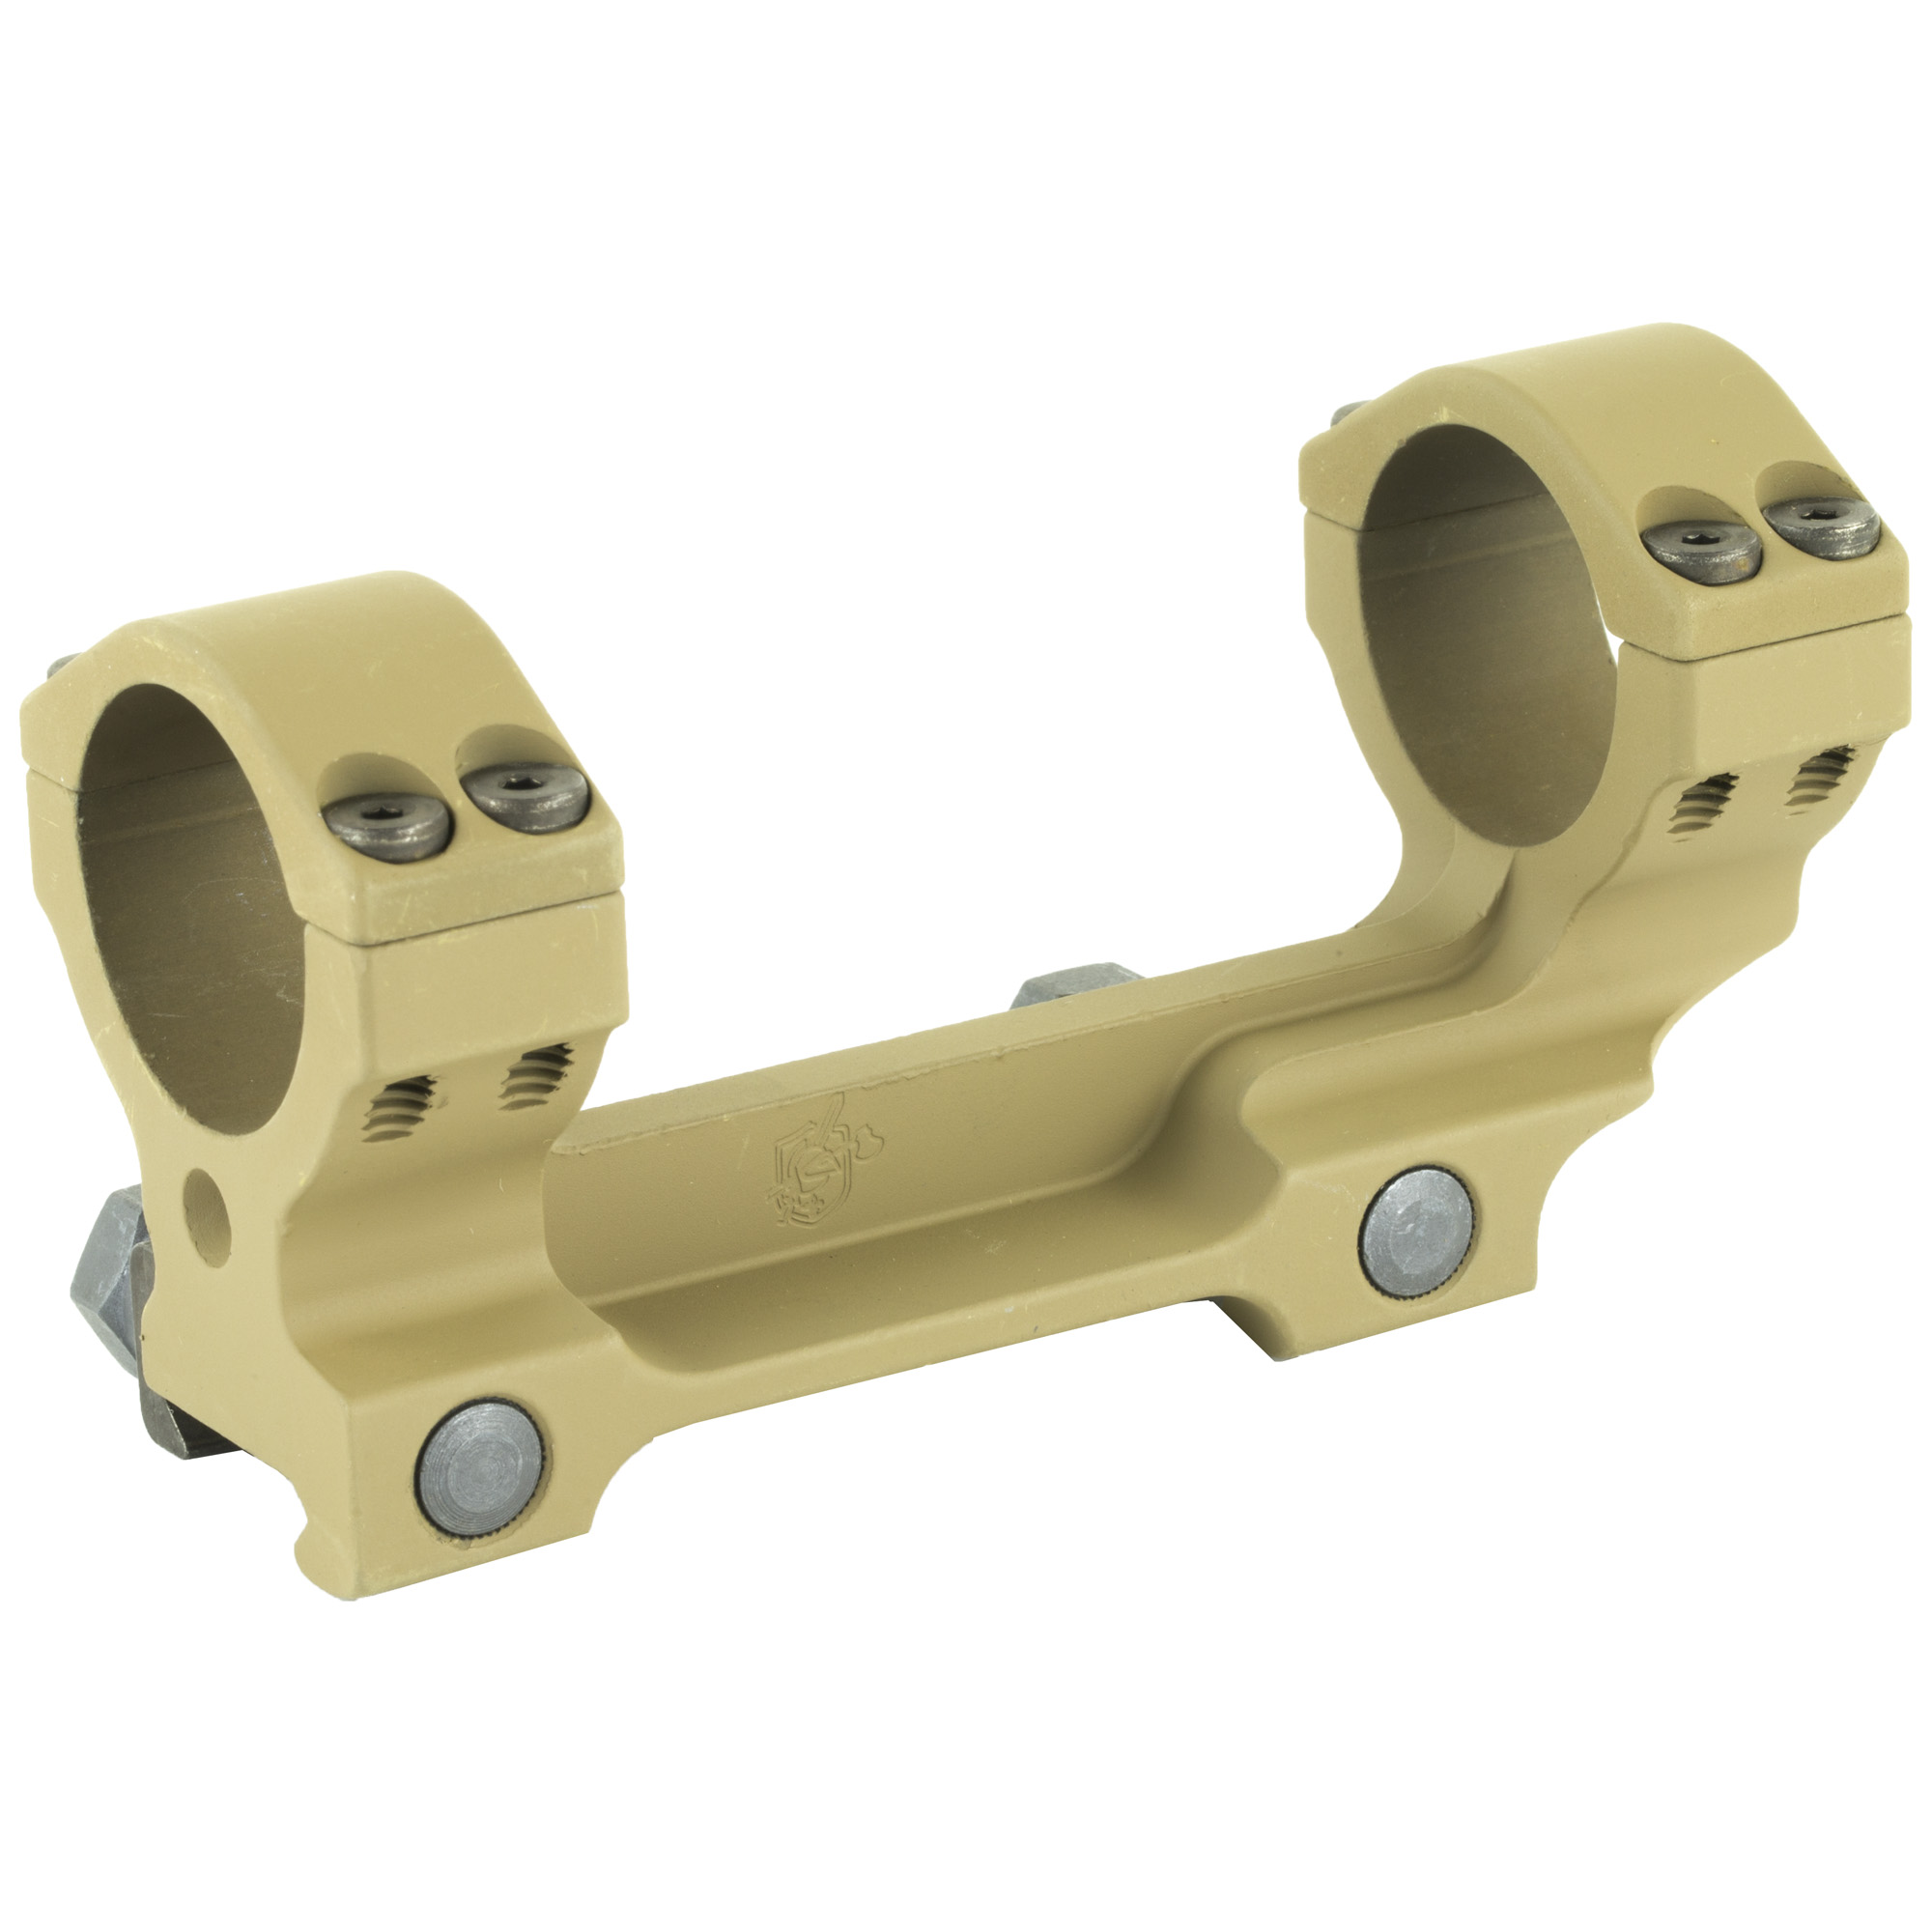 This KAC 30mm 1-Piece Scope Mount is constructed of lightweight aluminum and is compatible with any Picatinny-type top rail. It is the scope mount that was developed for use in the M110 SASS rifle package.